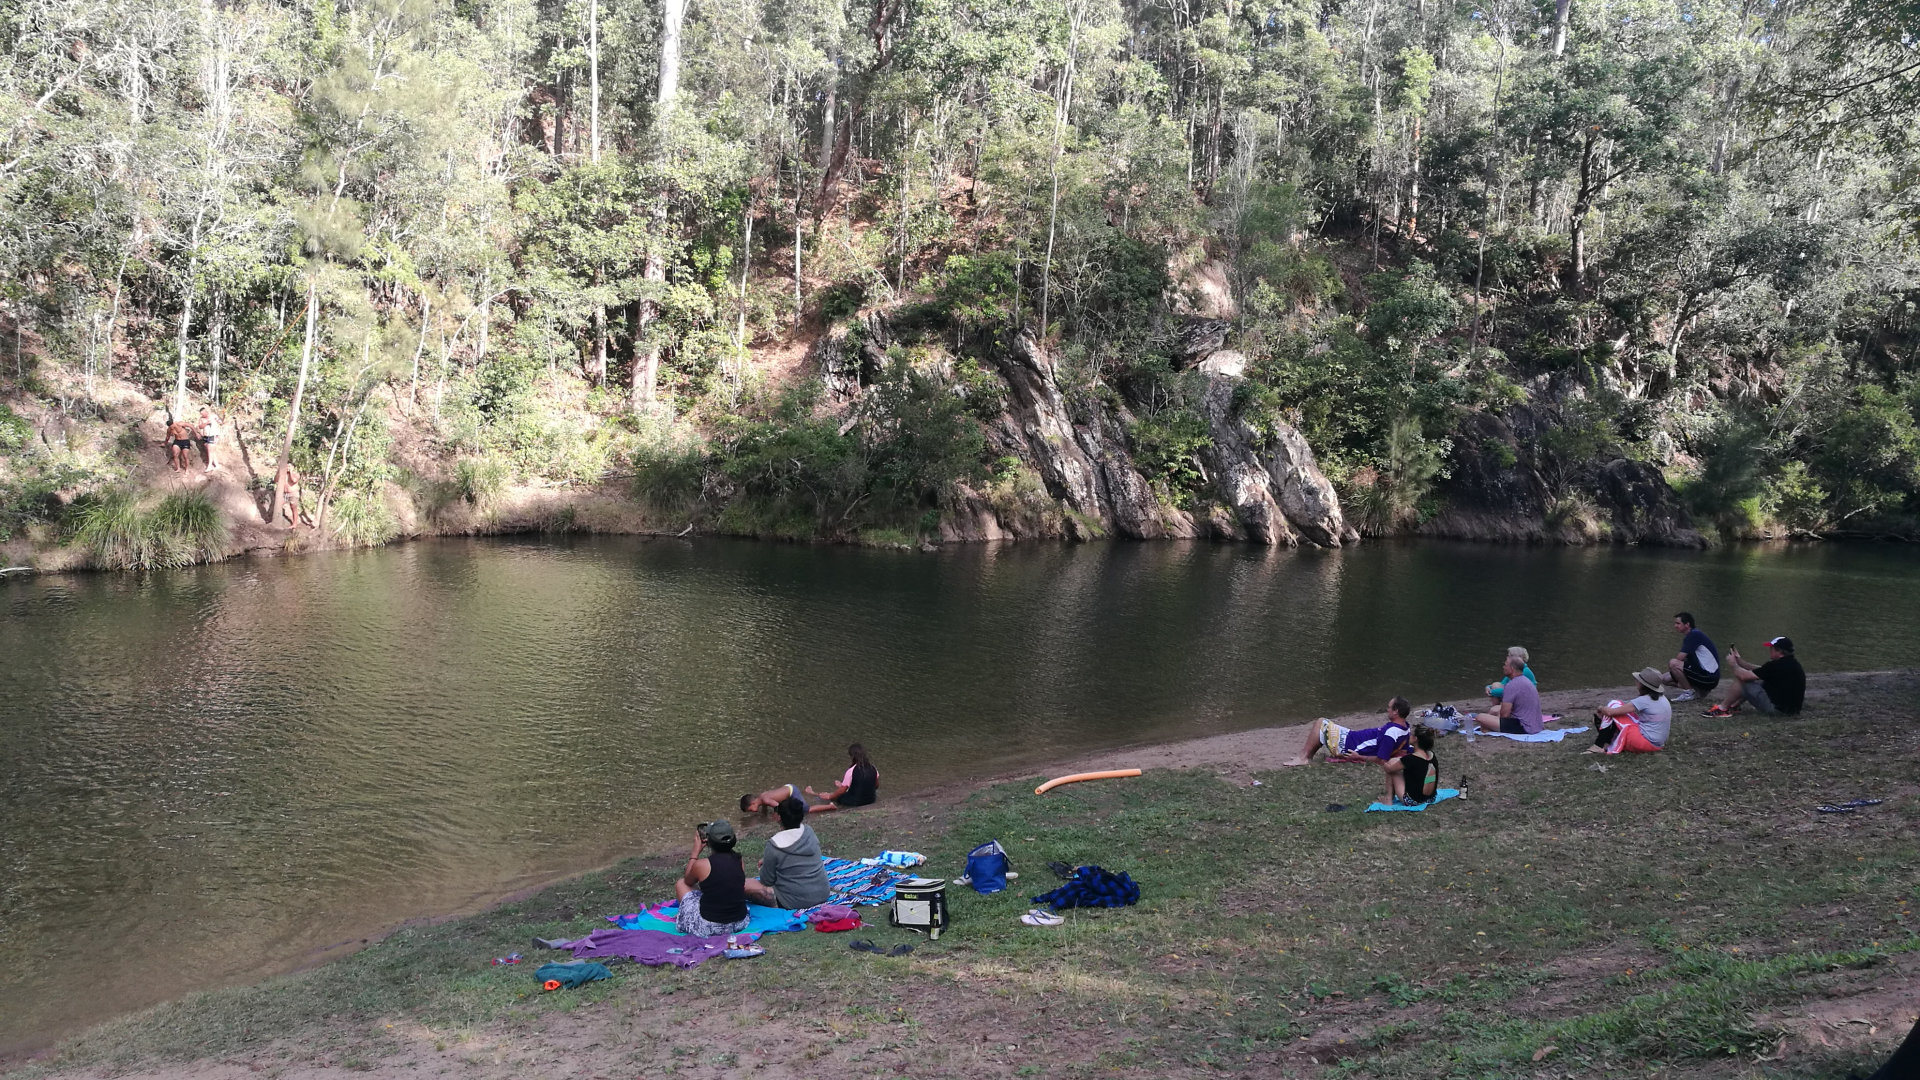 Swimming hole in Little Yabba Creek at Charlie Moreland, a campground in the Imbil State Forest south of Kenilworth. Charlie Moreland has a day use area with picnic tables and BBQs, and a camping